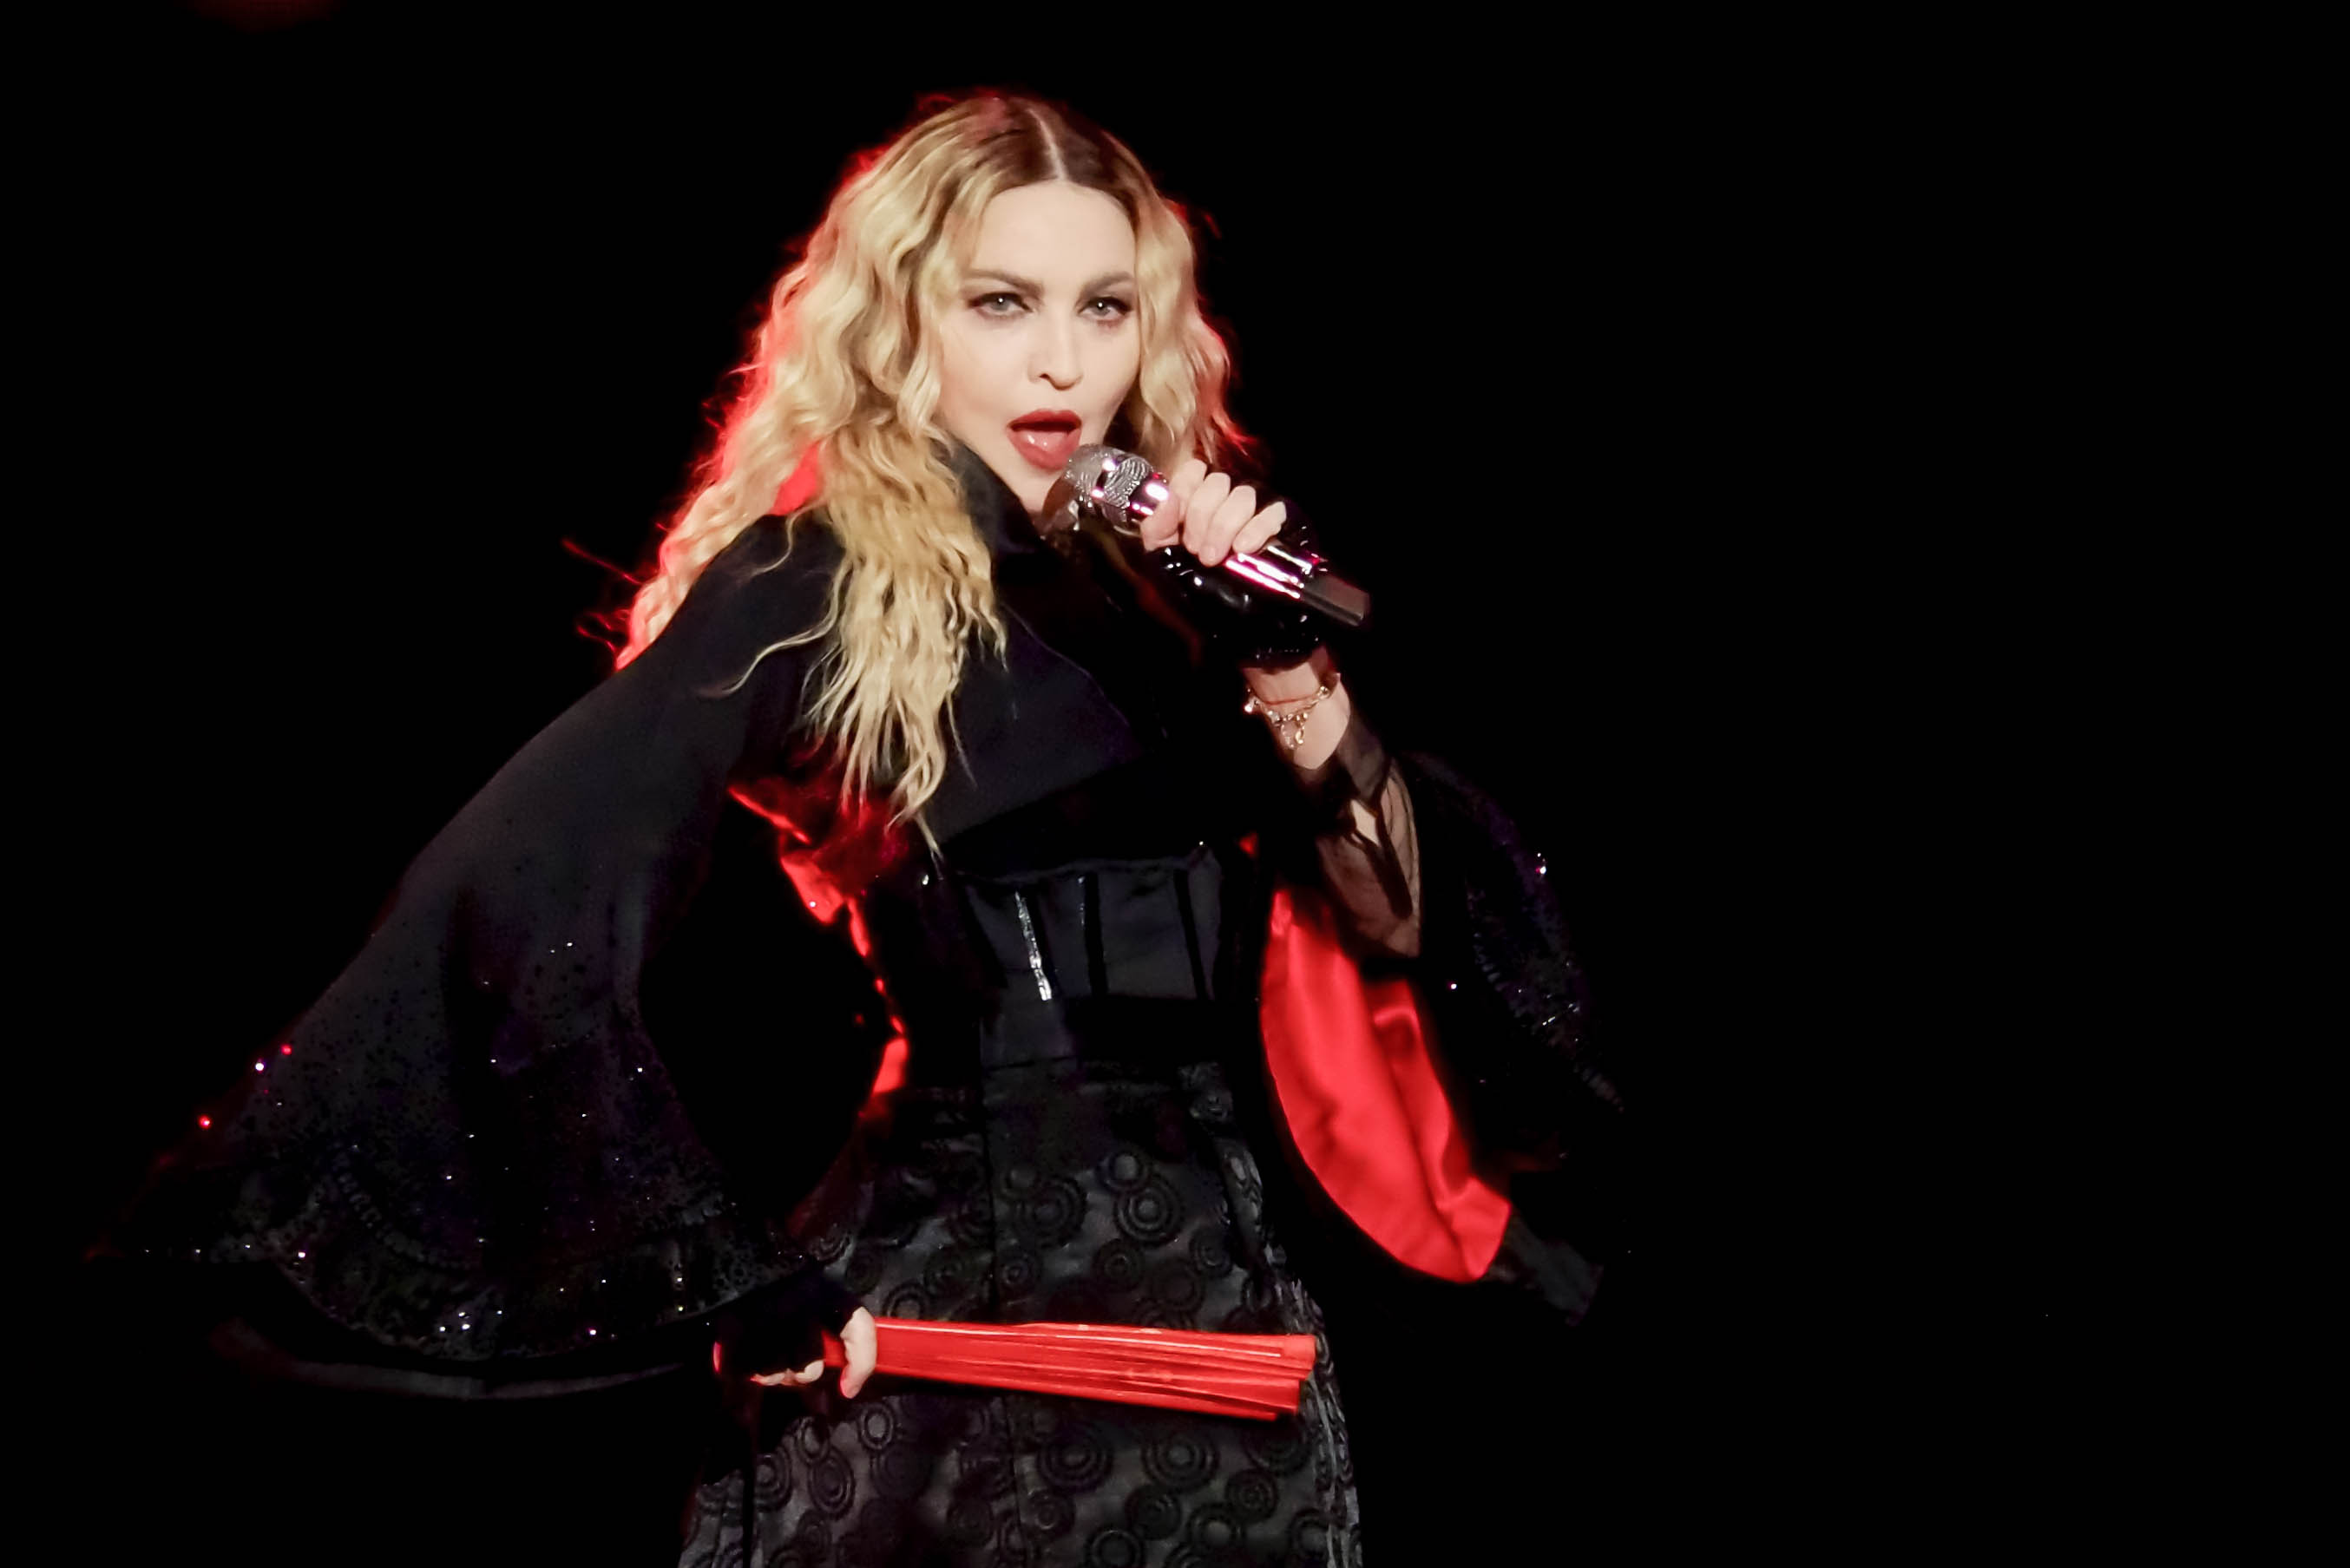 The singer and actress Madonna (Madonna Louise Veronica Ciccone) in concert at the Pala Alpitour in Turin during a stage of her Rebel Heart World Tour. Turin (Italy) November 21st, 2015 (Photo by Marco Piraccini/Archivio Marco Piraccini/Mondadori Portfolio via Getty Images)